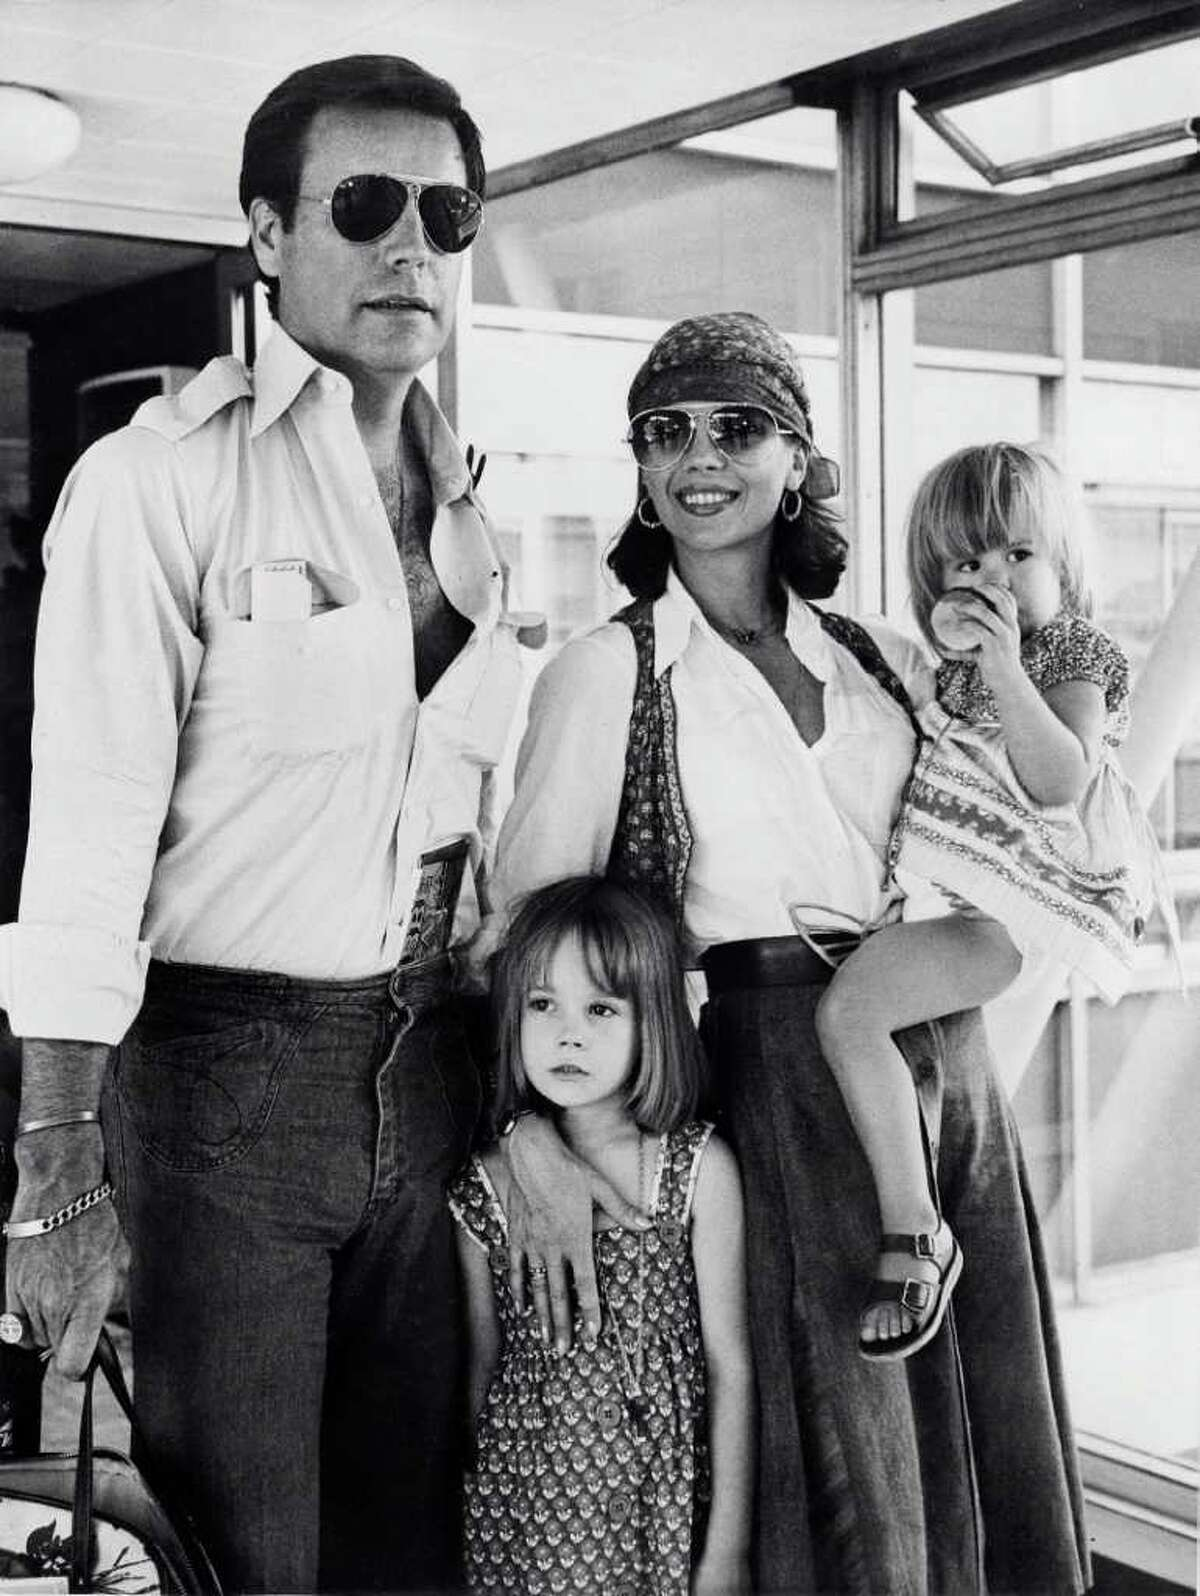 American actress Natalie Wood (1938-1981), her children Natasha (C), Courtney (R), and her husband actor Robert Wagner arrive at London airport July 4, 1976. She was married three times, twice to Wagner.